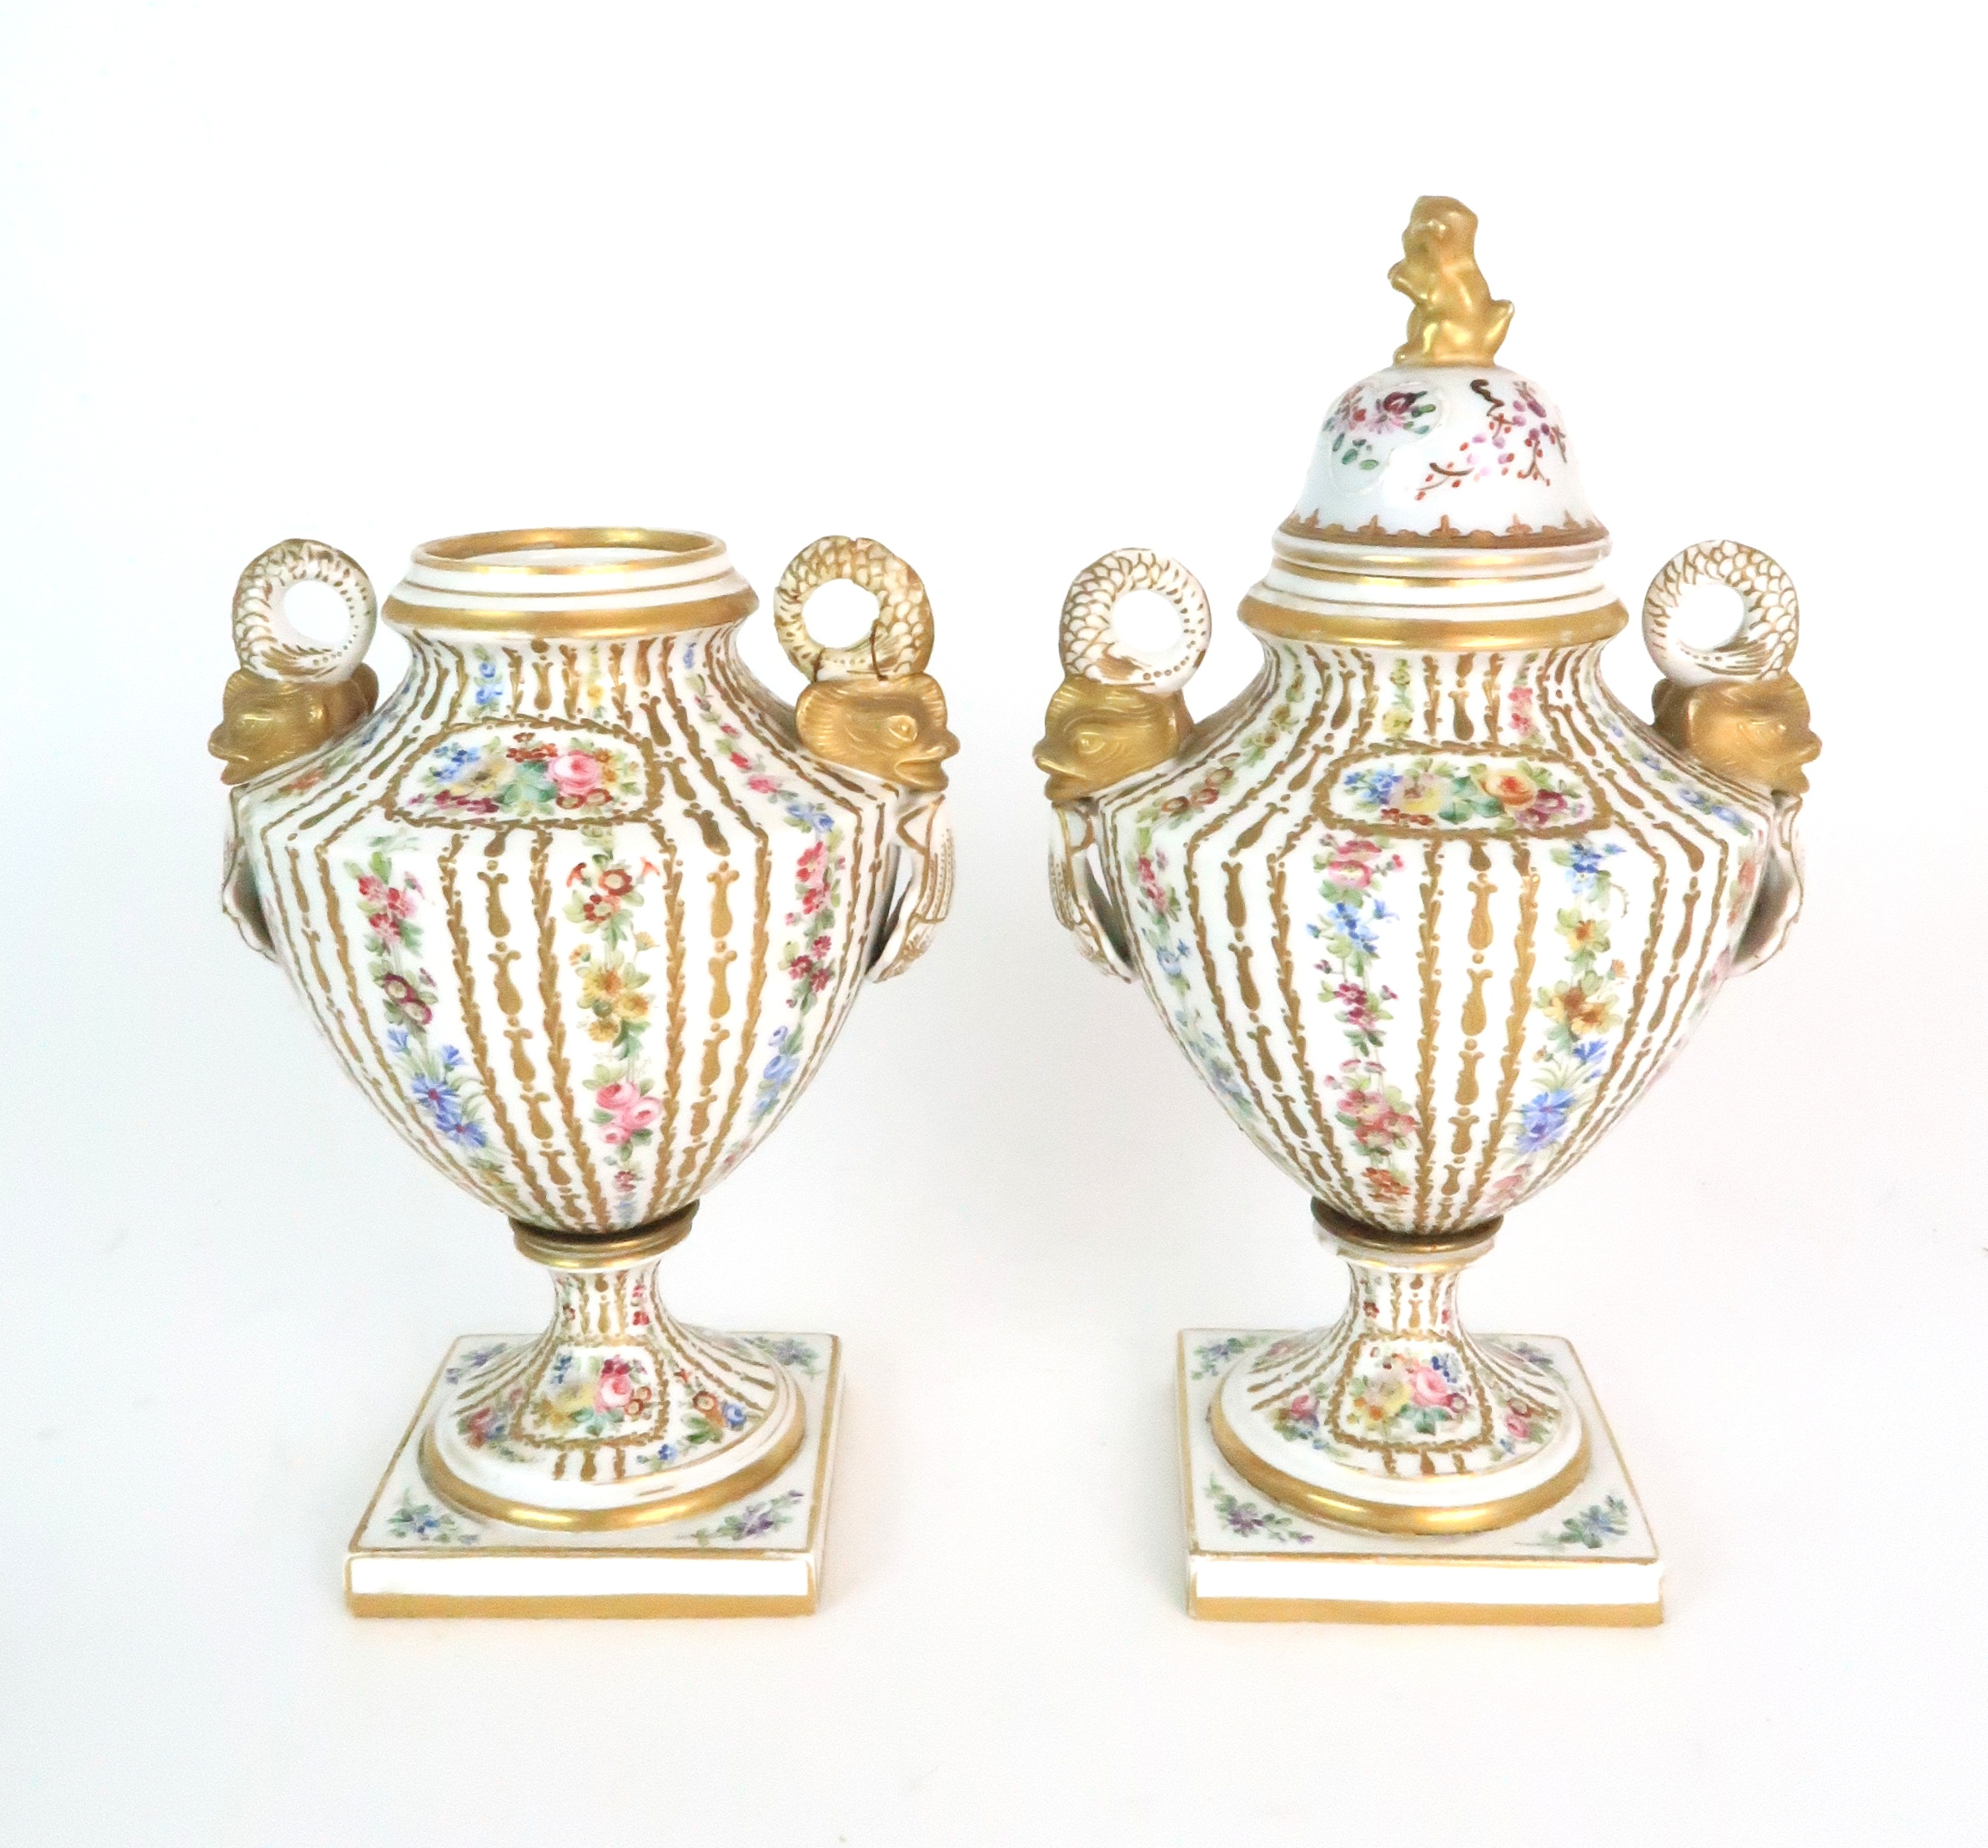 A PAIR OF CONTINENTAL PORCELAIN URNS each decorated with strings of flowers and gilt dot and dash - Image 4 of 16